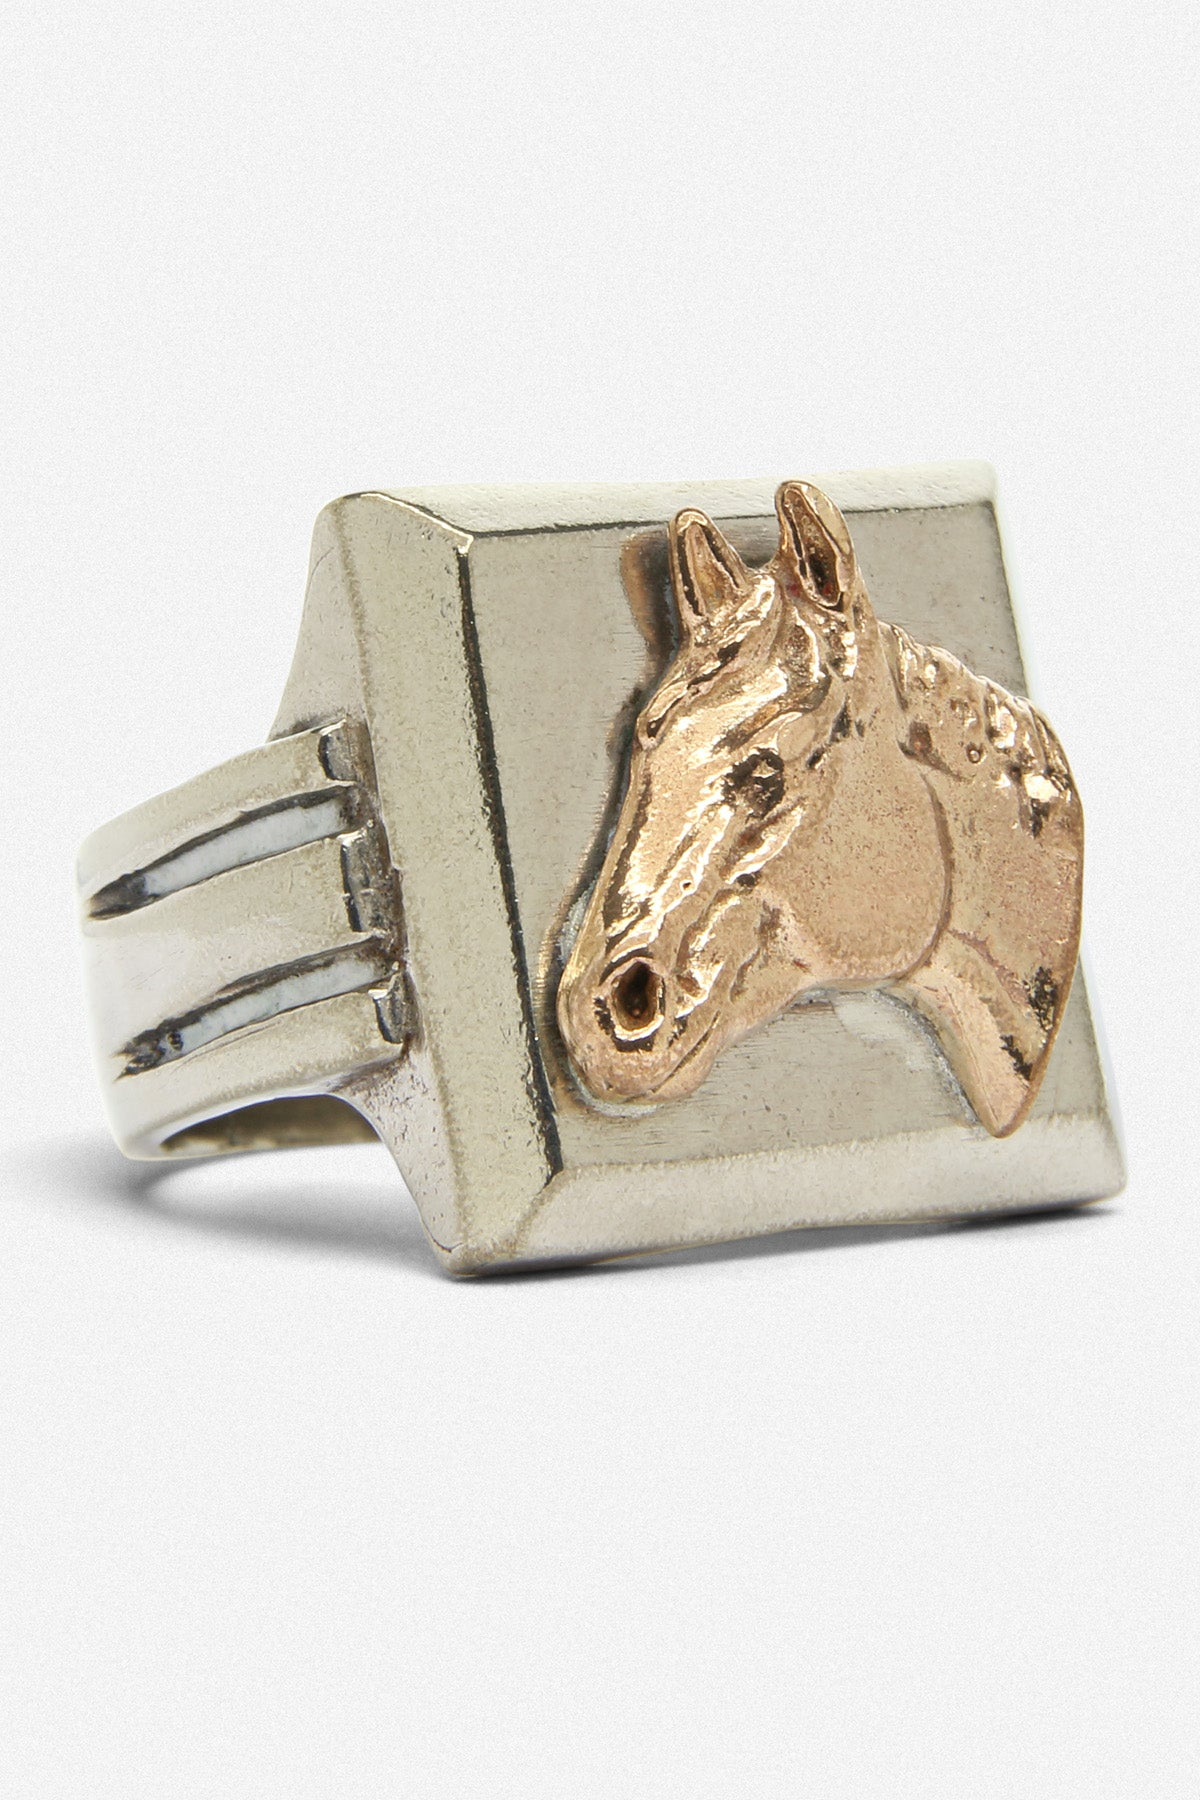 HORSE BIKER RING - Fortune Goods